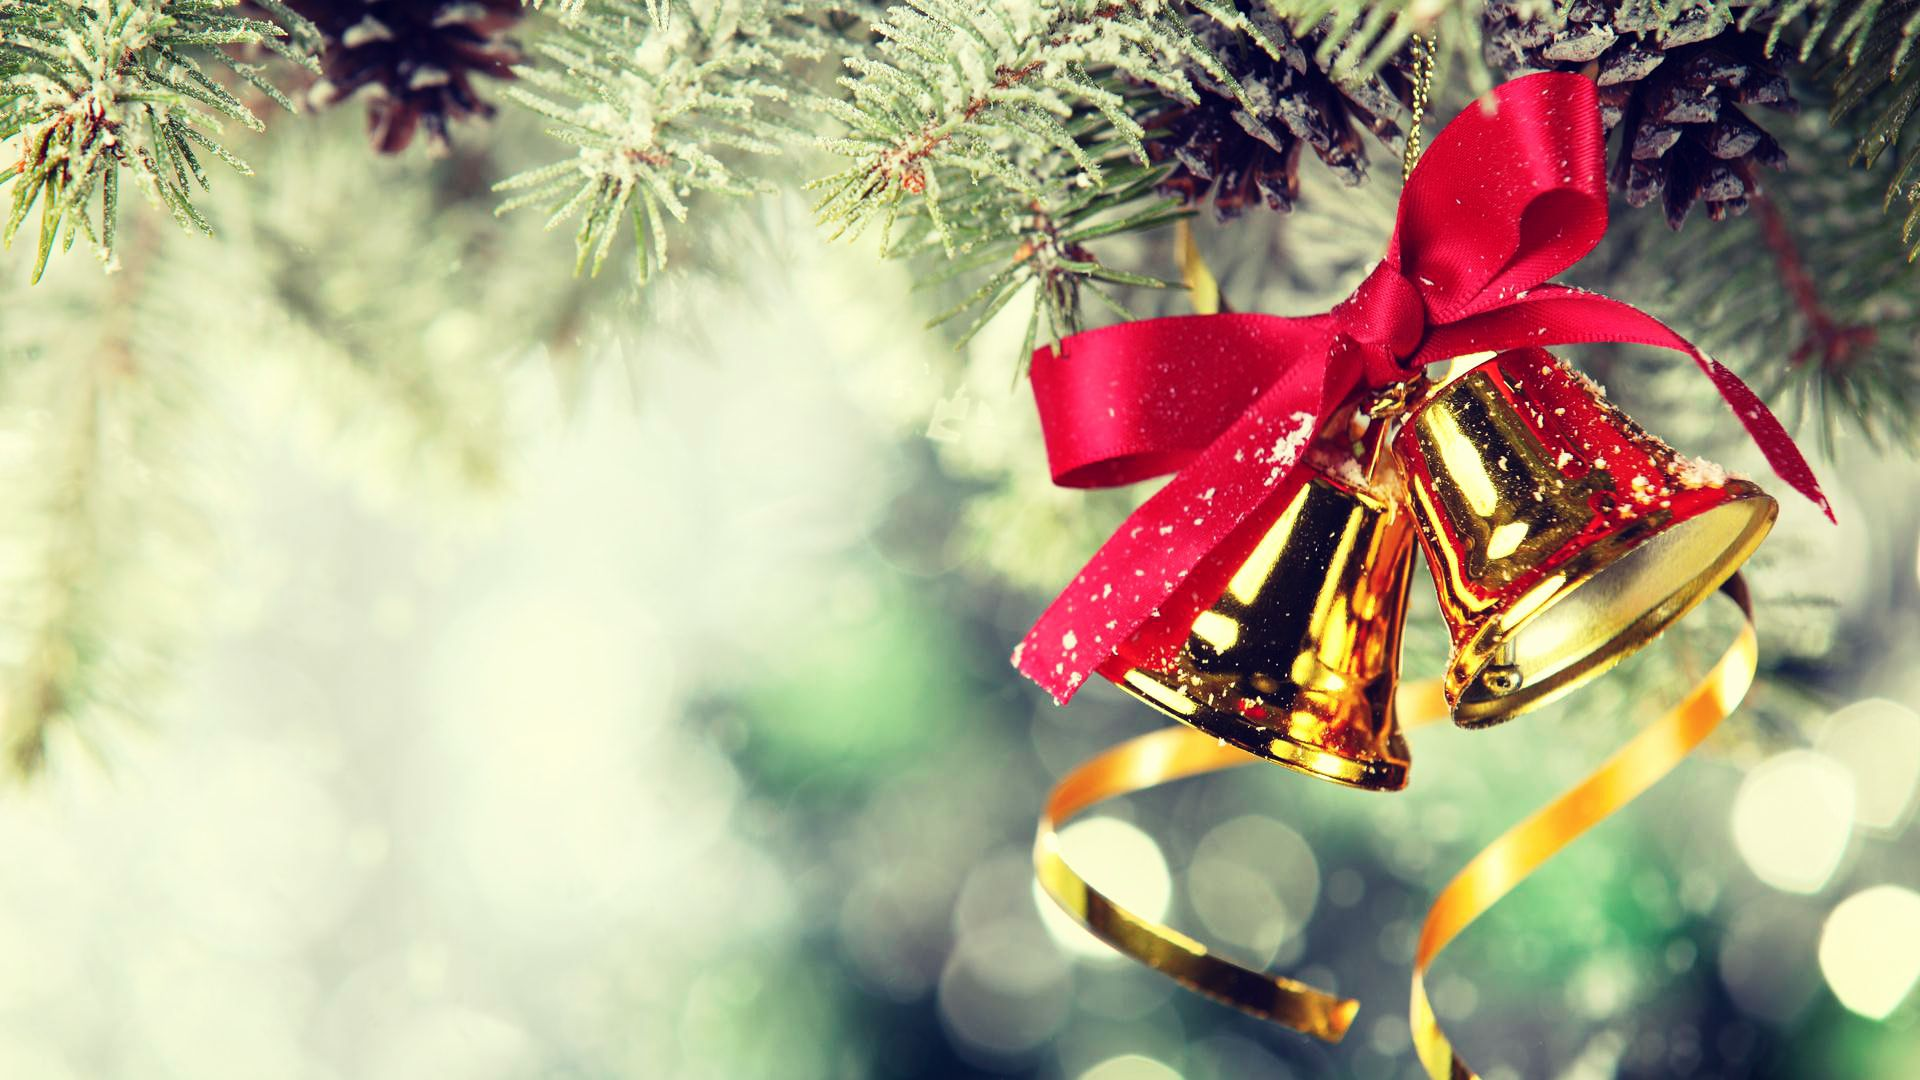 christmas-jingle-bells-hd-wallpaper-on-the-christmas-tree